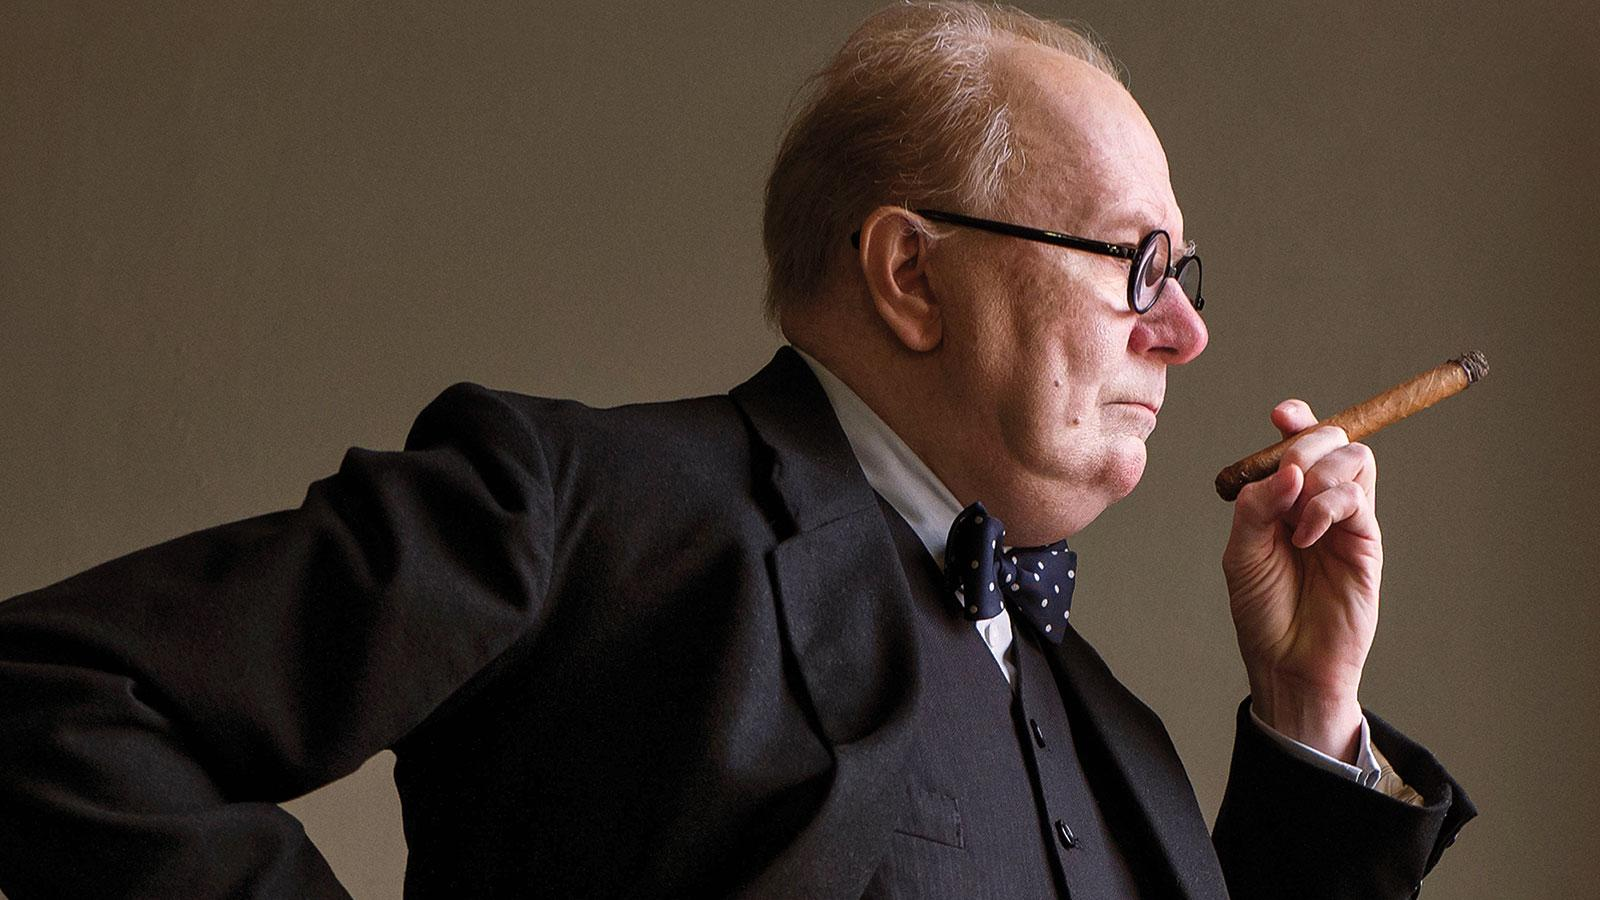 Winston Churchill portrayed by Gary Oldman in the film Darkest Hour.